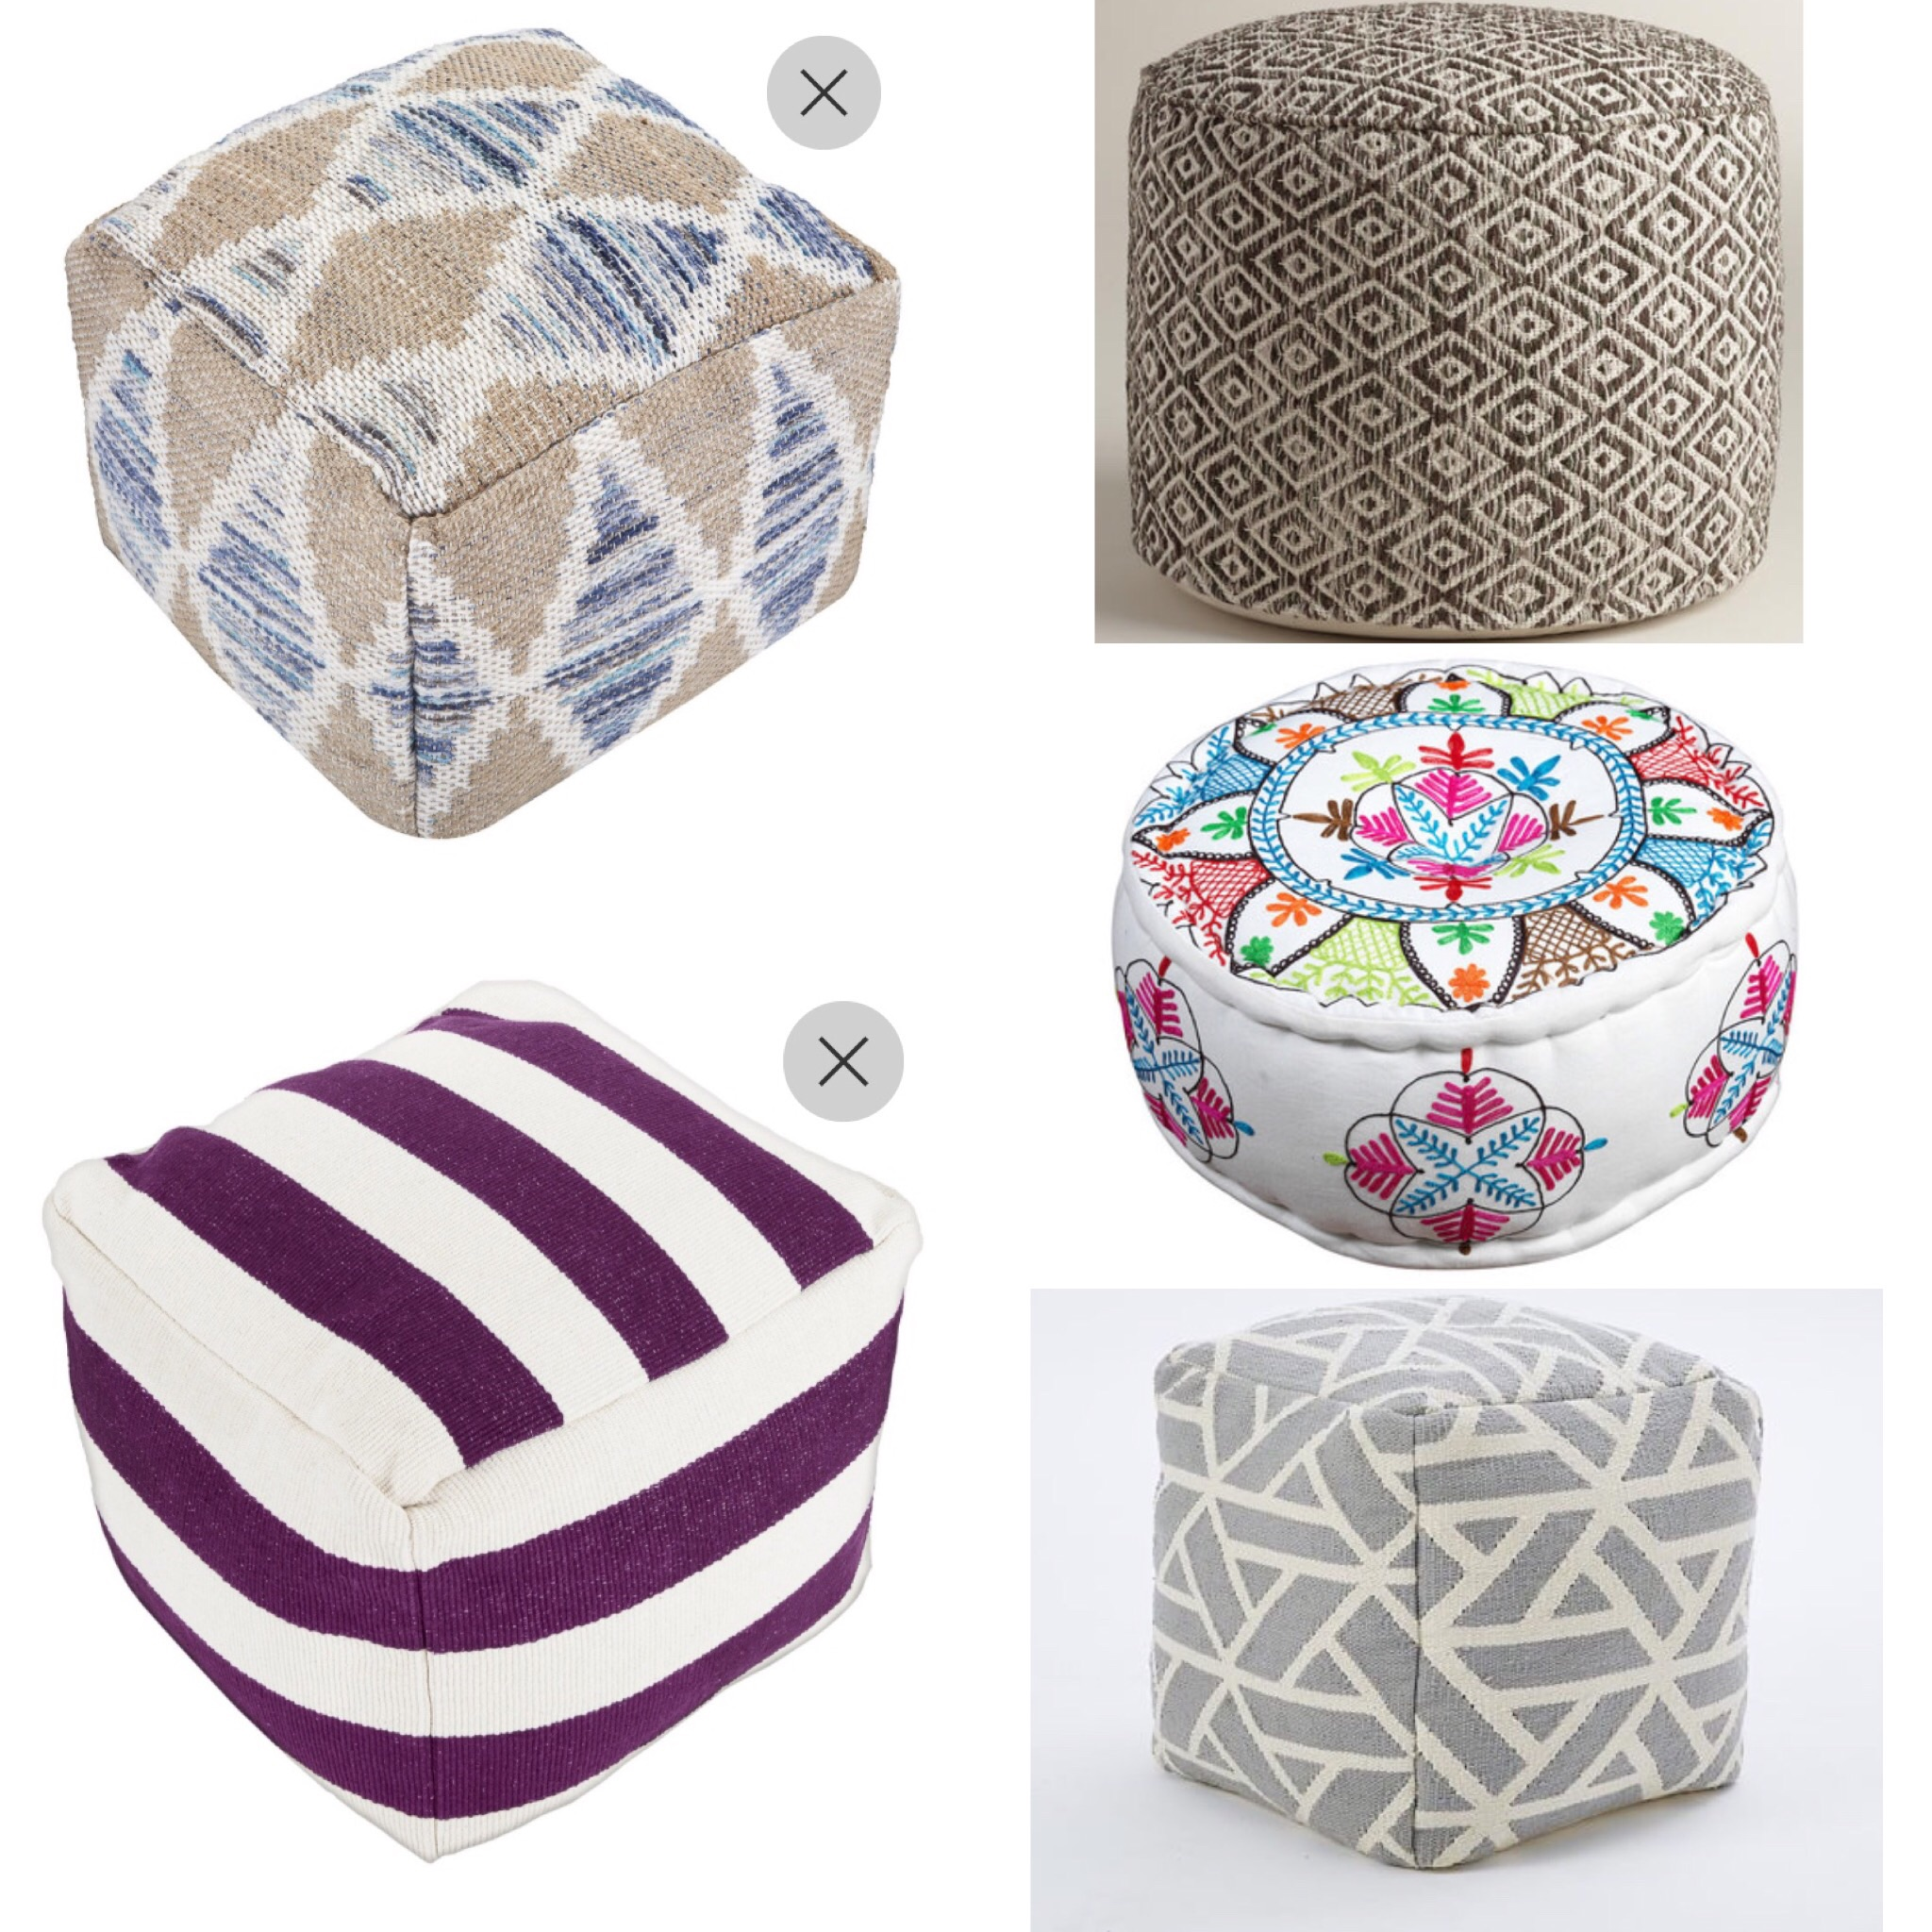 Five Fab Floor Poufs!